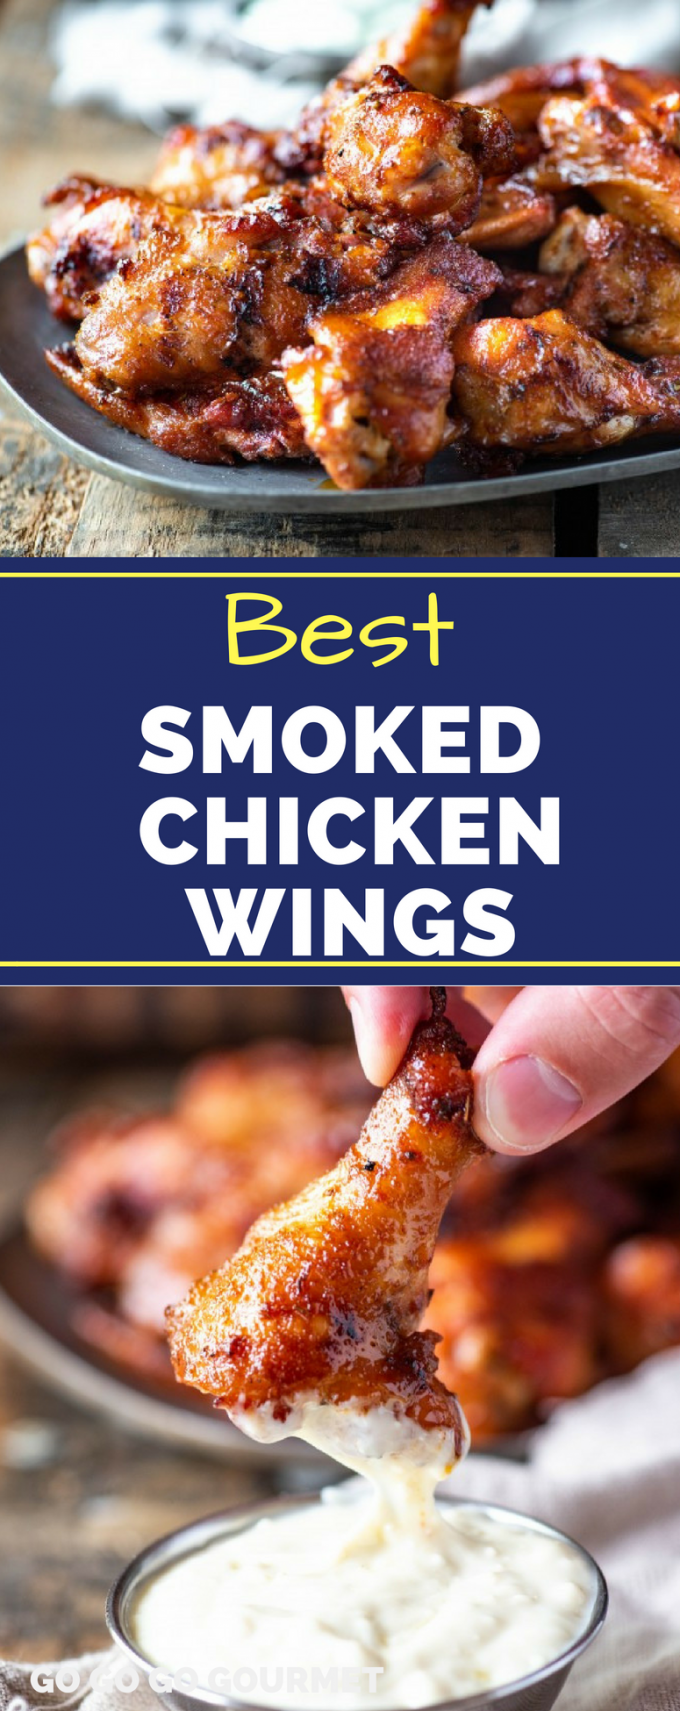 Get your smokers ready, this is the most amazing Smoked Chicken Wings recipe! With a perfectly seasoned rub, these crispy wings will be your new favorite! #smokedchickenwings #smokerrecipes #bestsmokedchickenwings #gogogogourmet